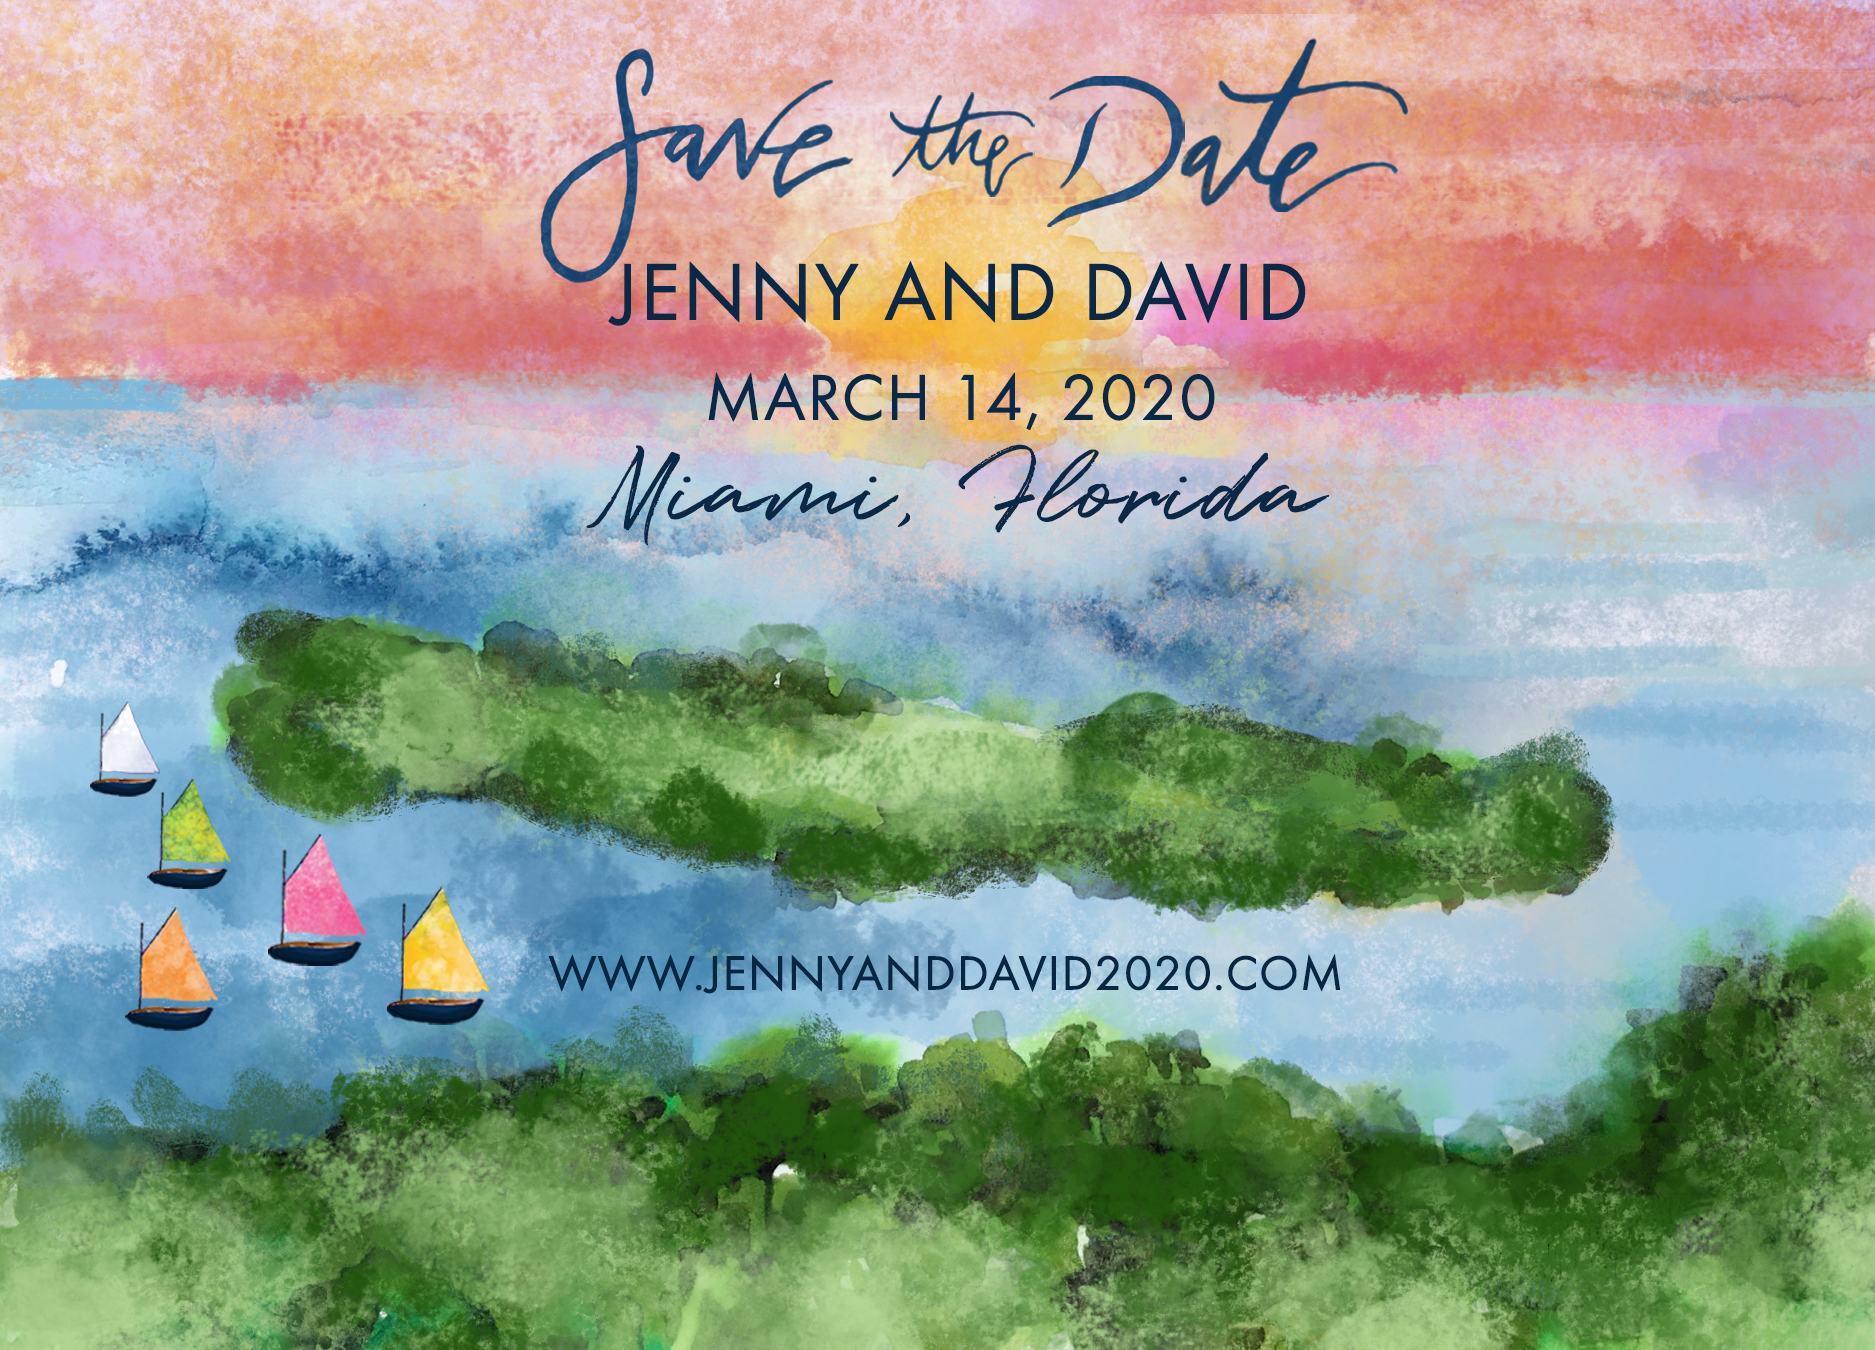 Jenny and David